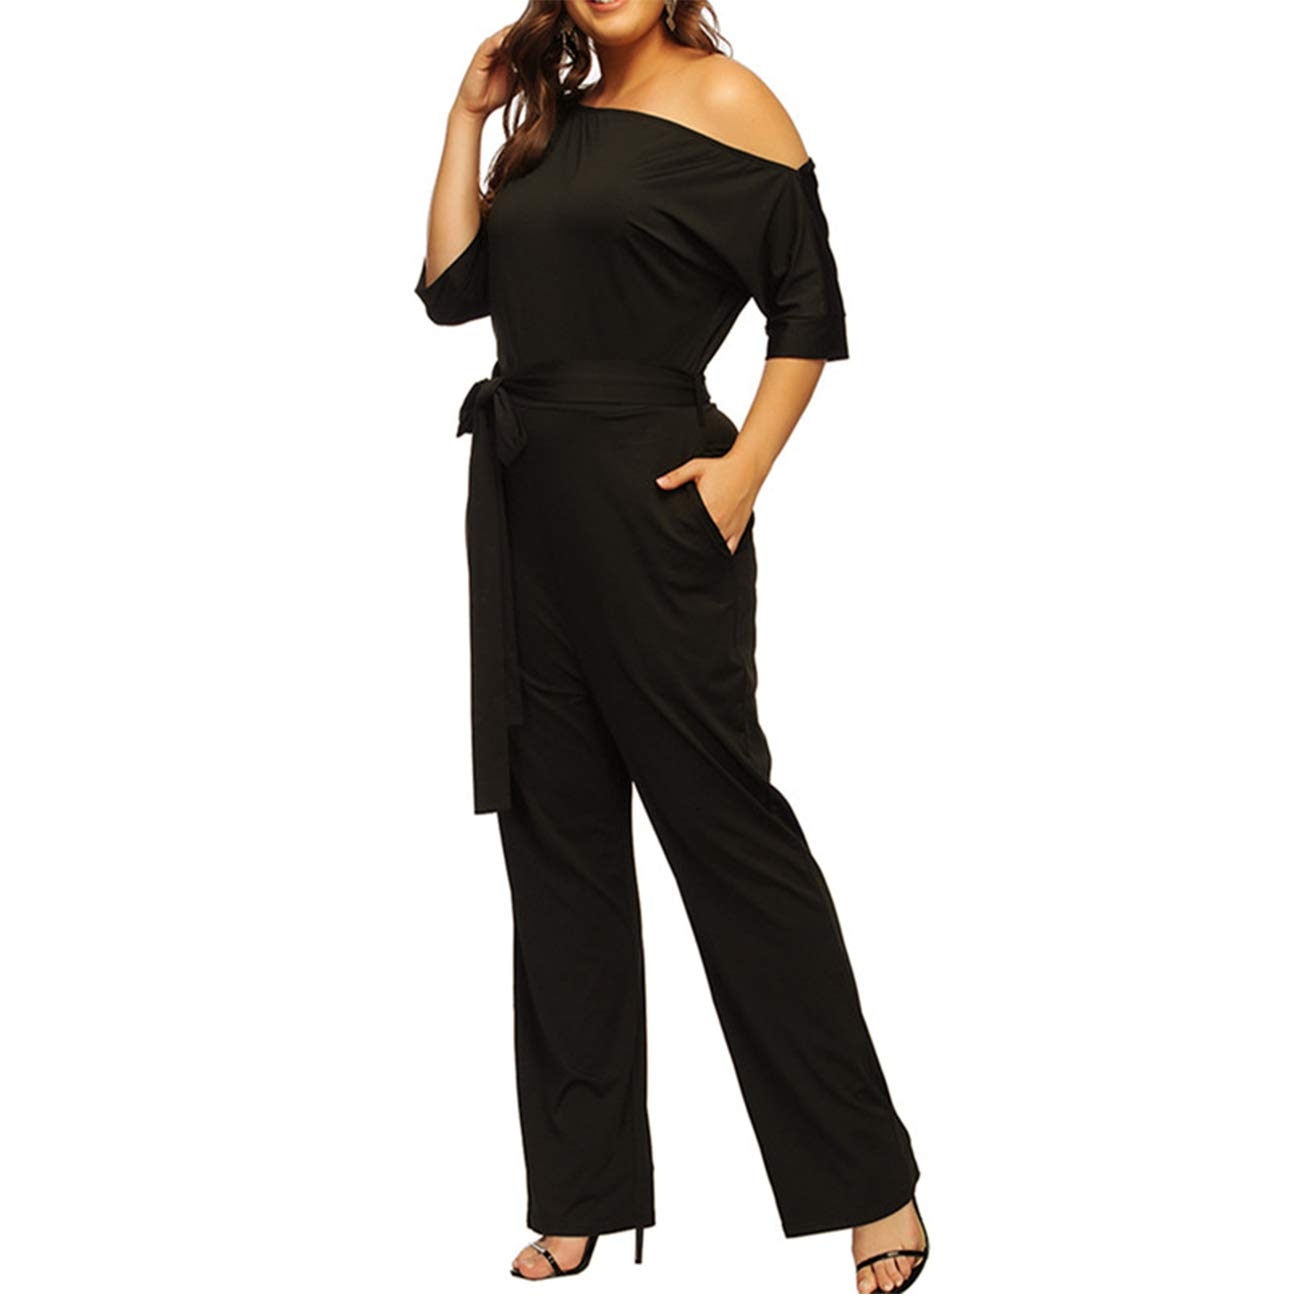 Women's Fashion Off-Shoulder Plus Size Jumpsuits Rompers with Belt